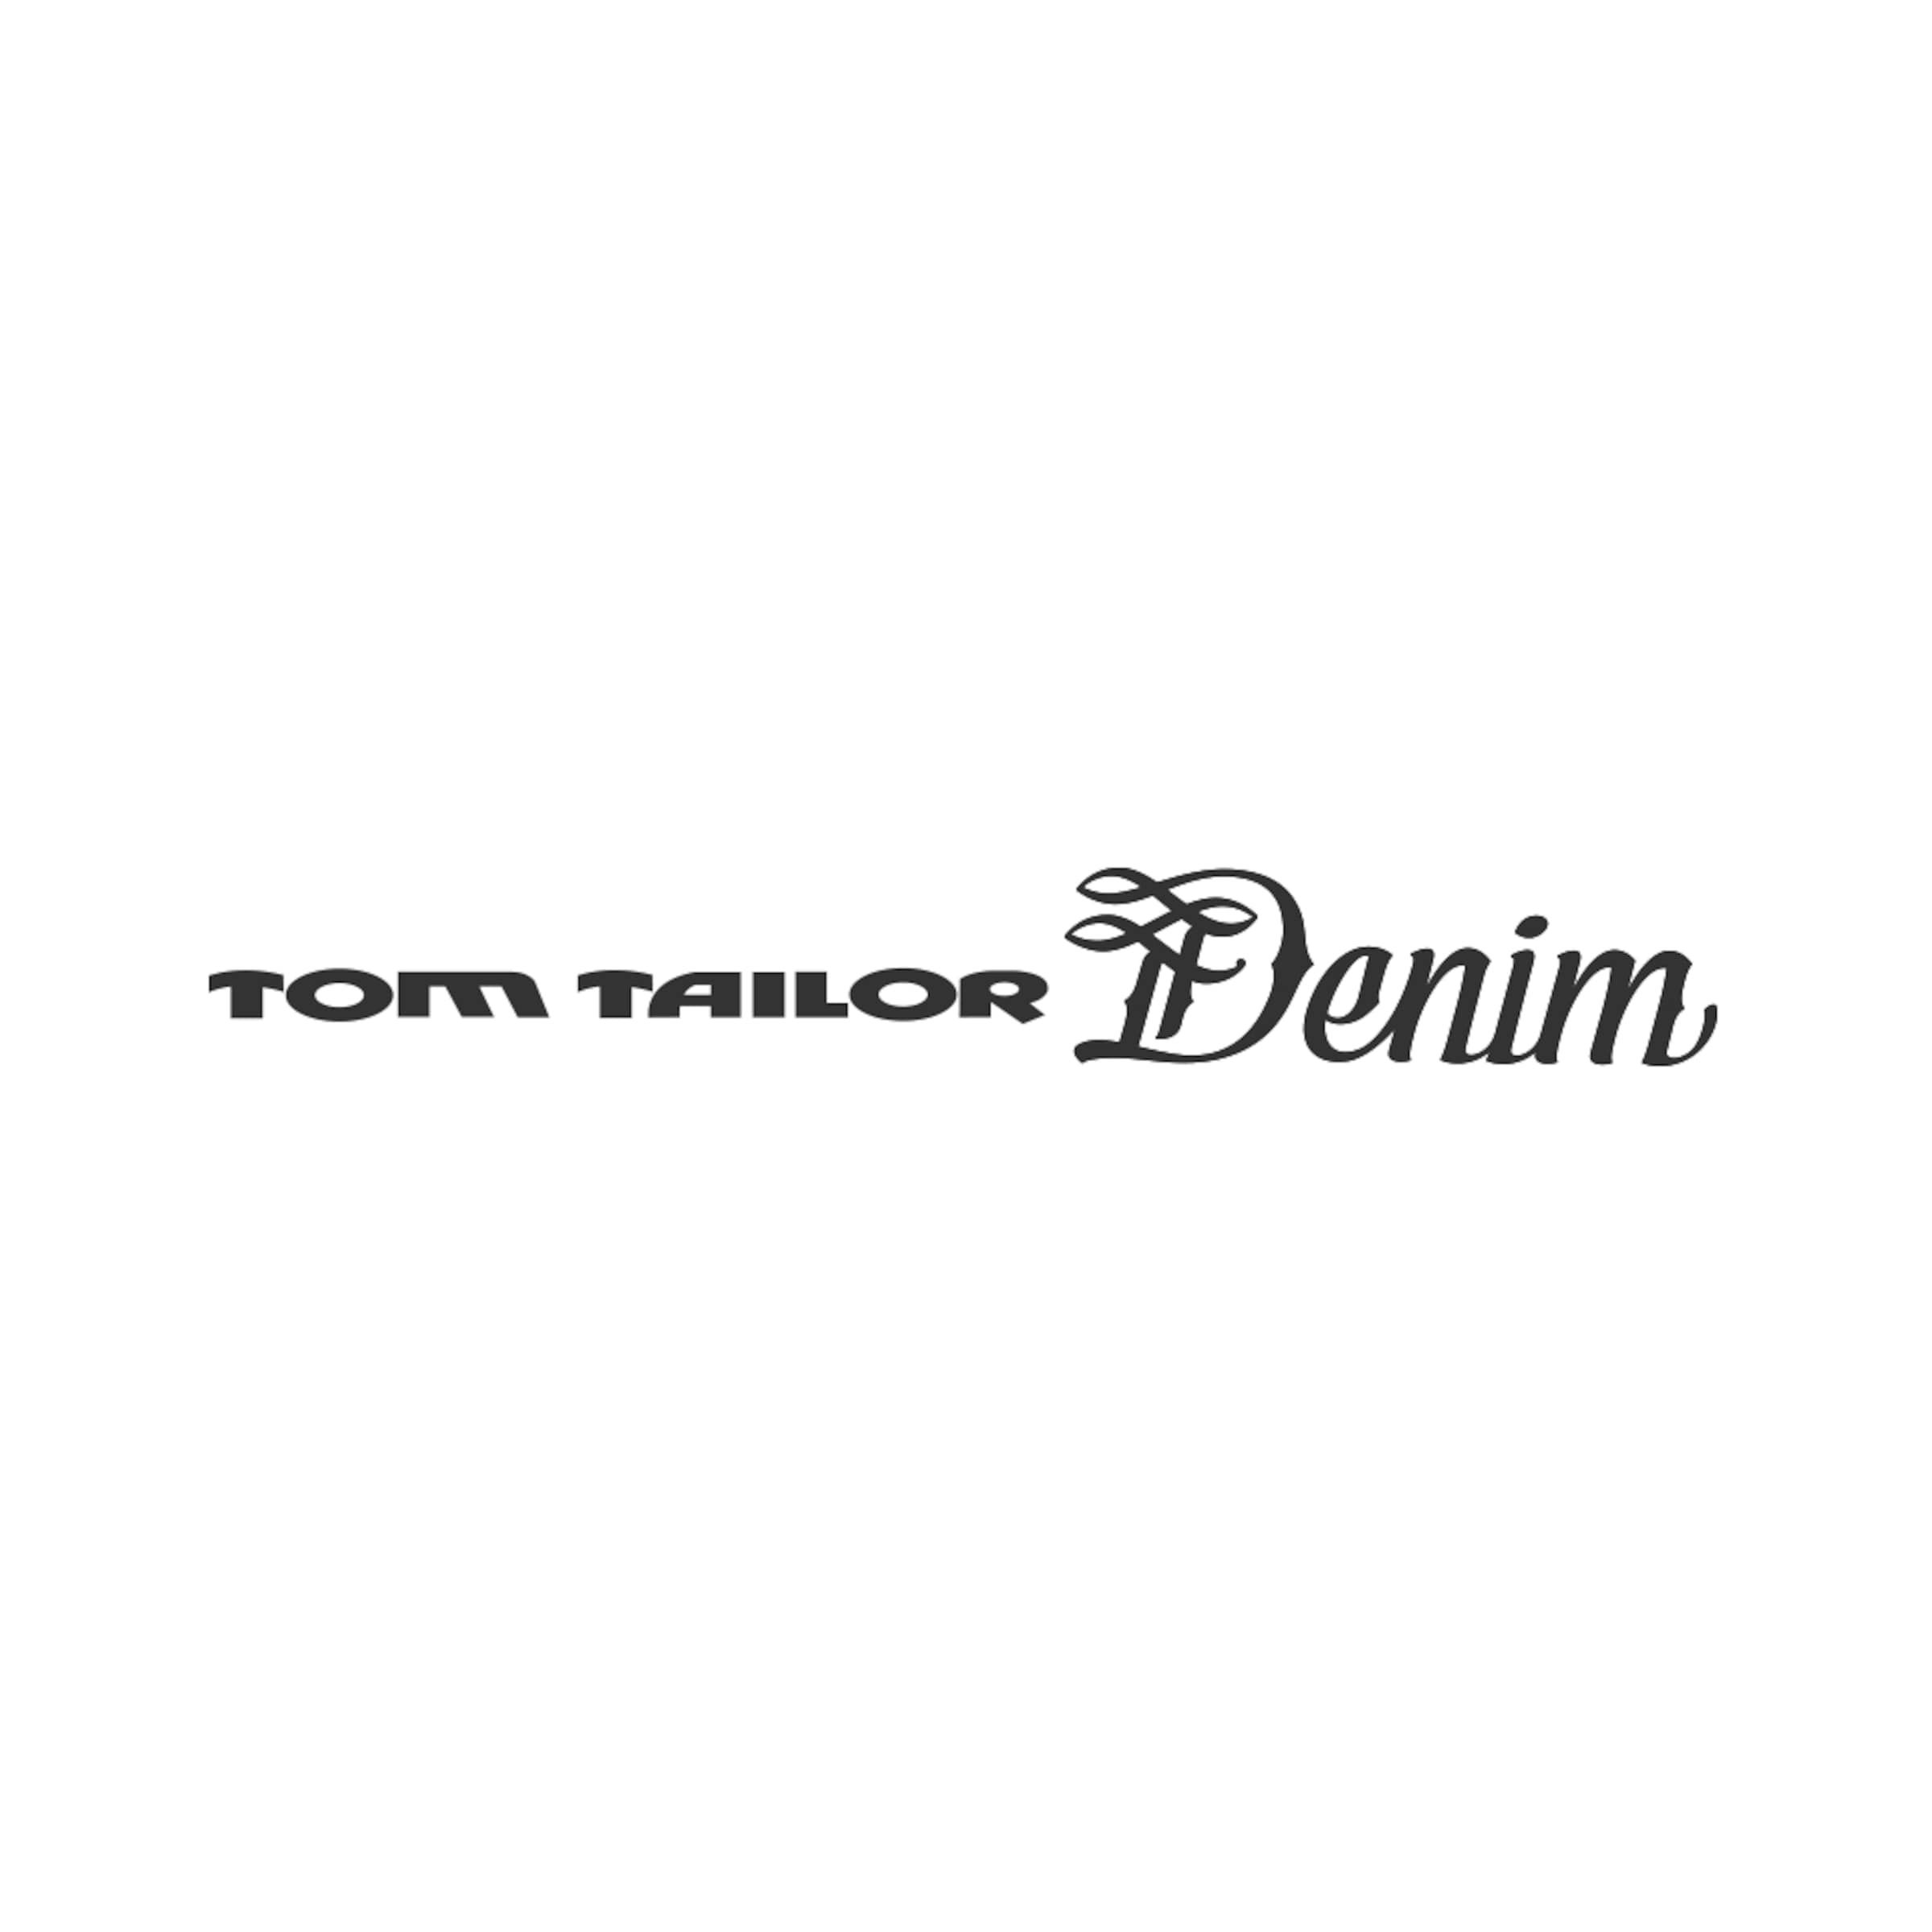 TOM TAILOR DENIM